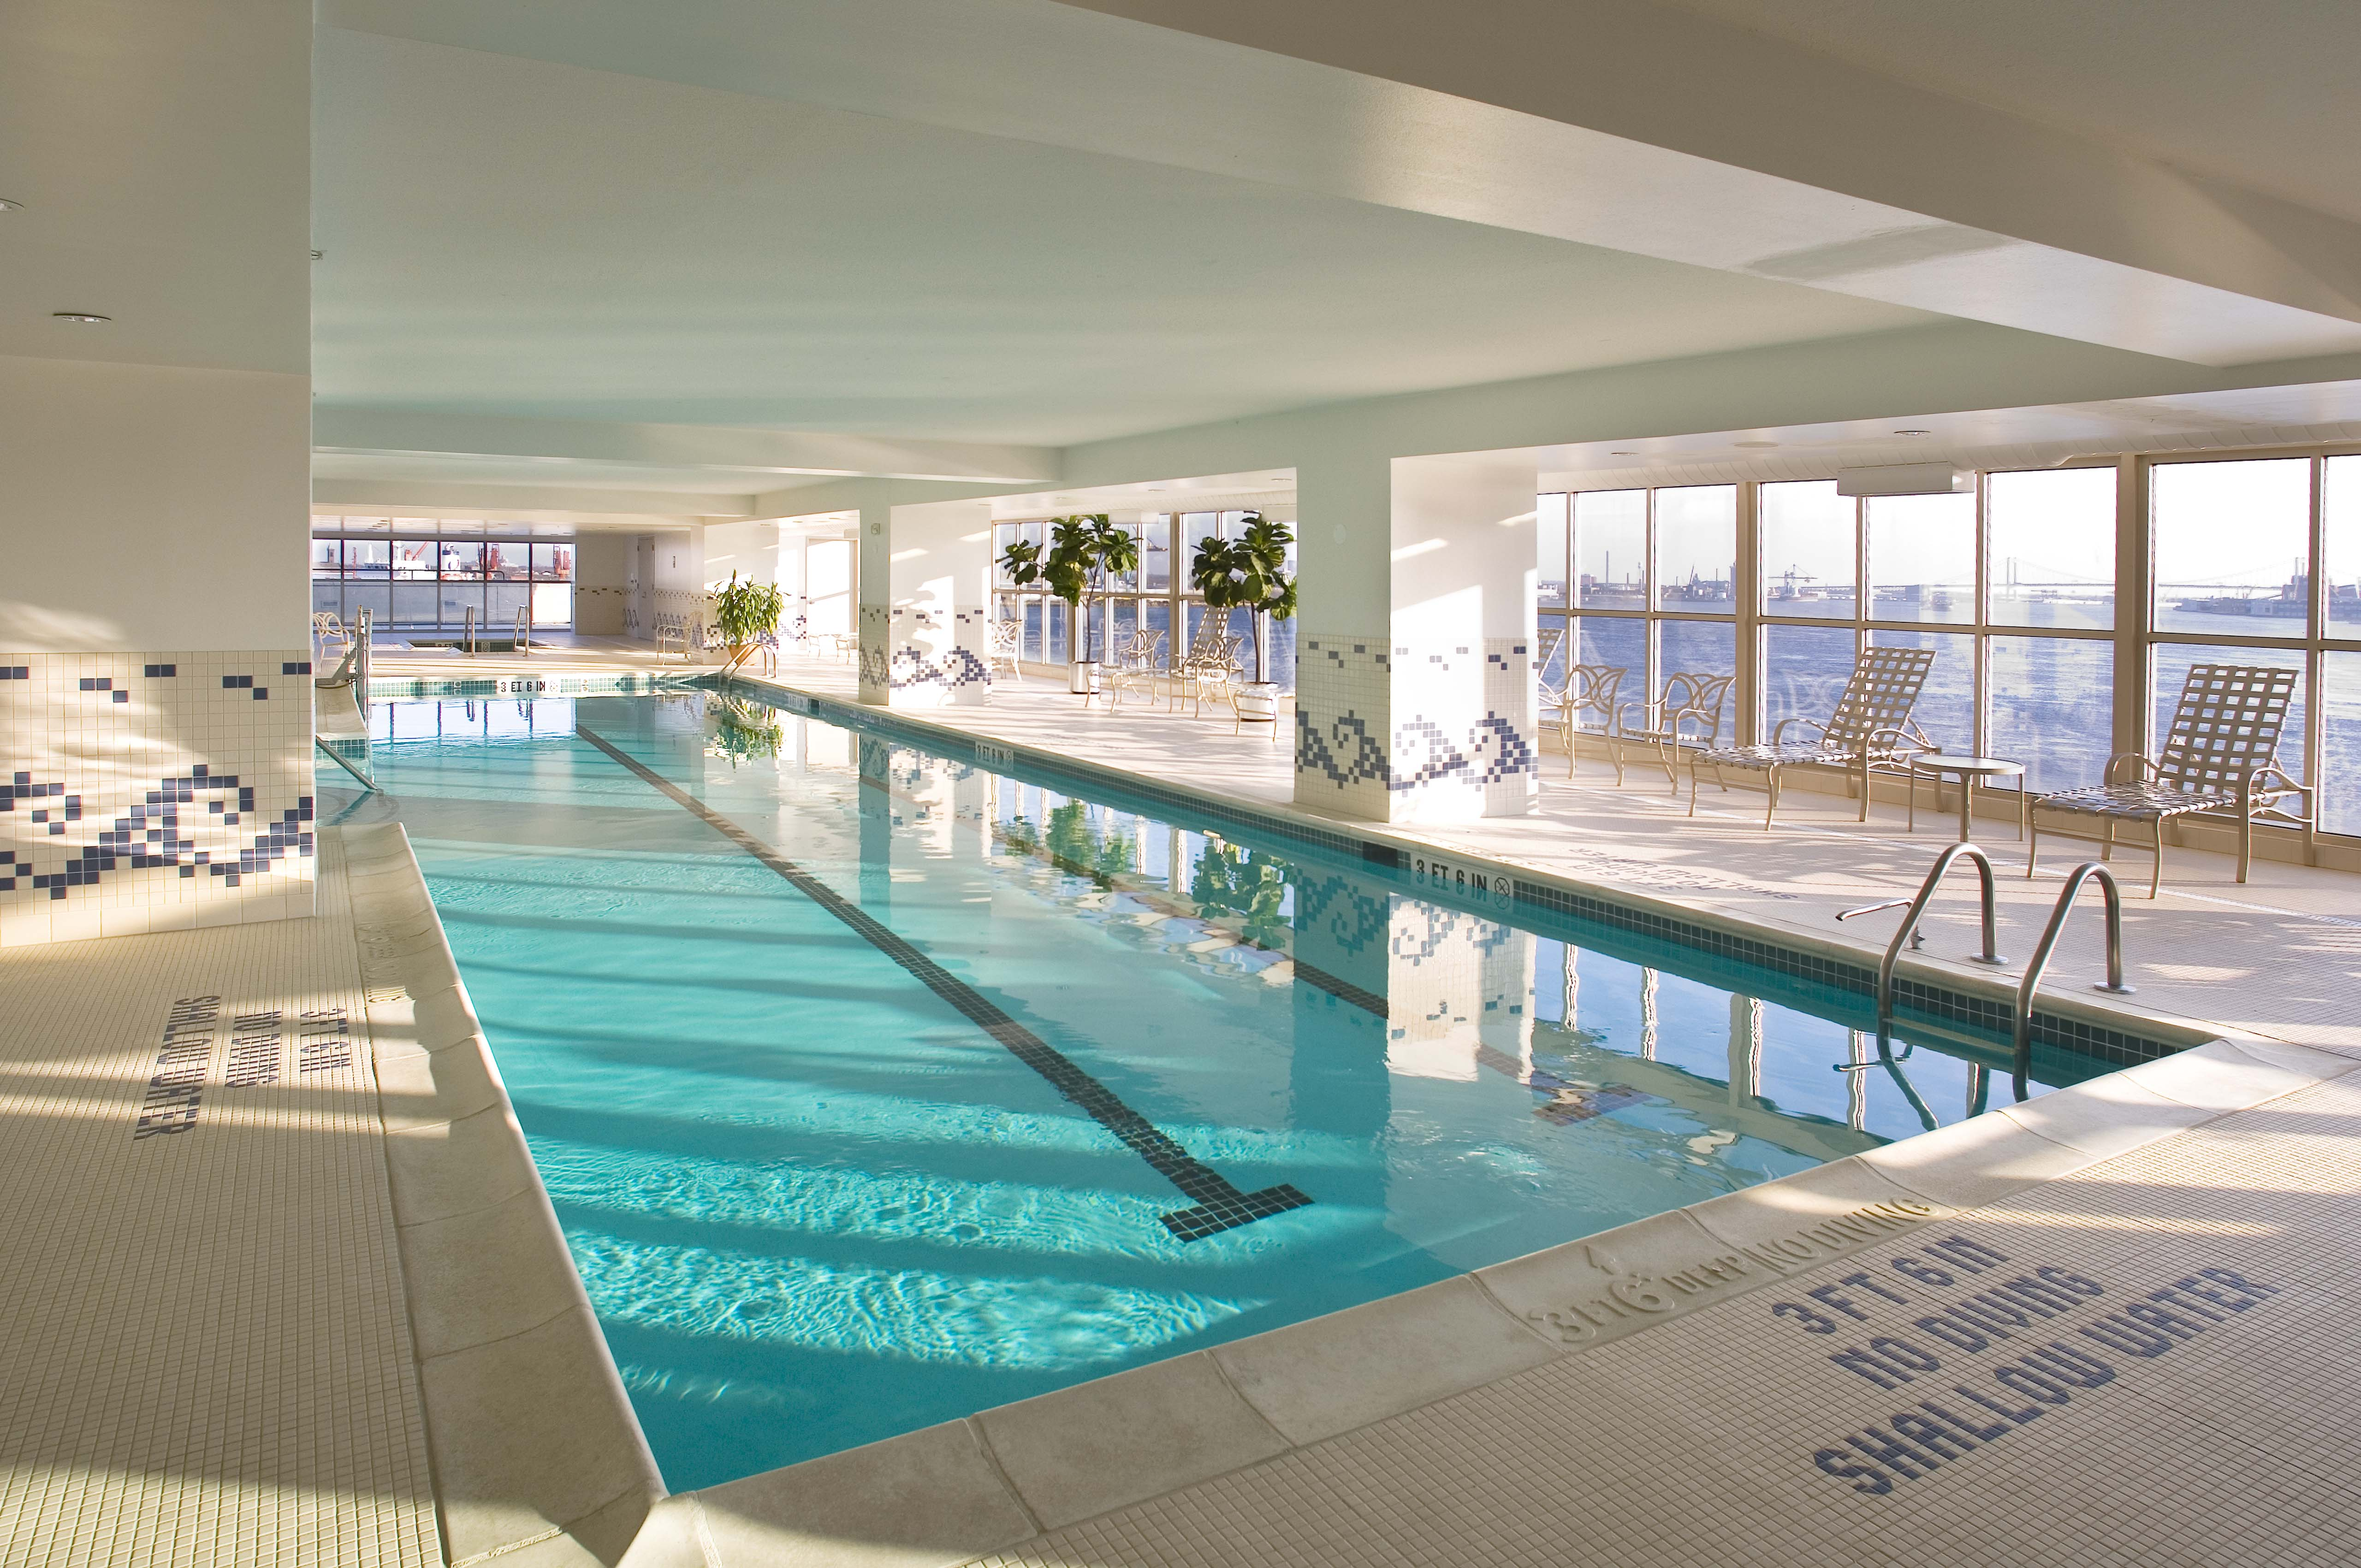 Thaw out and relax in our Dockside heated indoor pool - The ... Simple House Plans Indoor Pool on indoor fireplace plans, bedroom with pool house plans, pool bath house plans, pool do it yourself plans, commercial pool house plans, mini club house plans, beach house plans, outdoor pool house plans, hot tub house plans, beachfront house plans, handicap accessible house plans, indoor pool building plans, terrace house plans, cottage house plans, indoor stone pools, indoor pool addition plans, studio pool house plans, pool house building plans, all suite house plans, patio pool house plans,